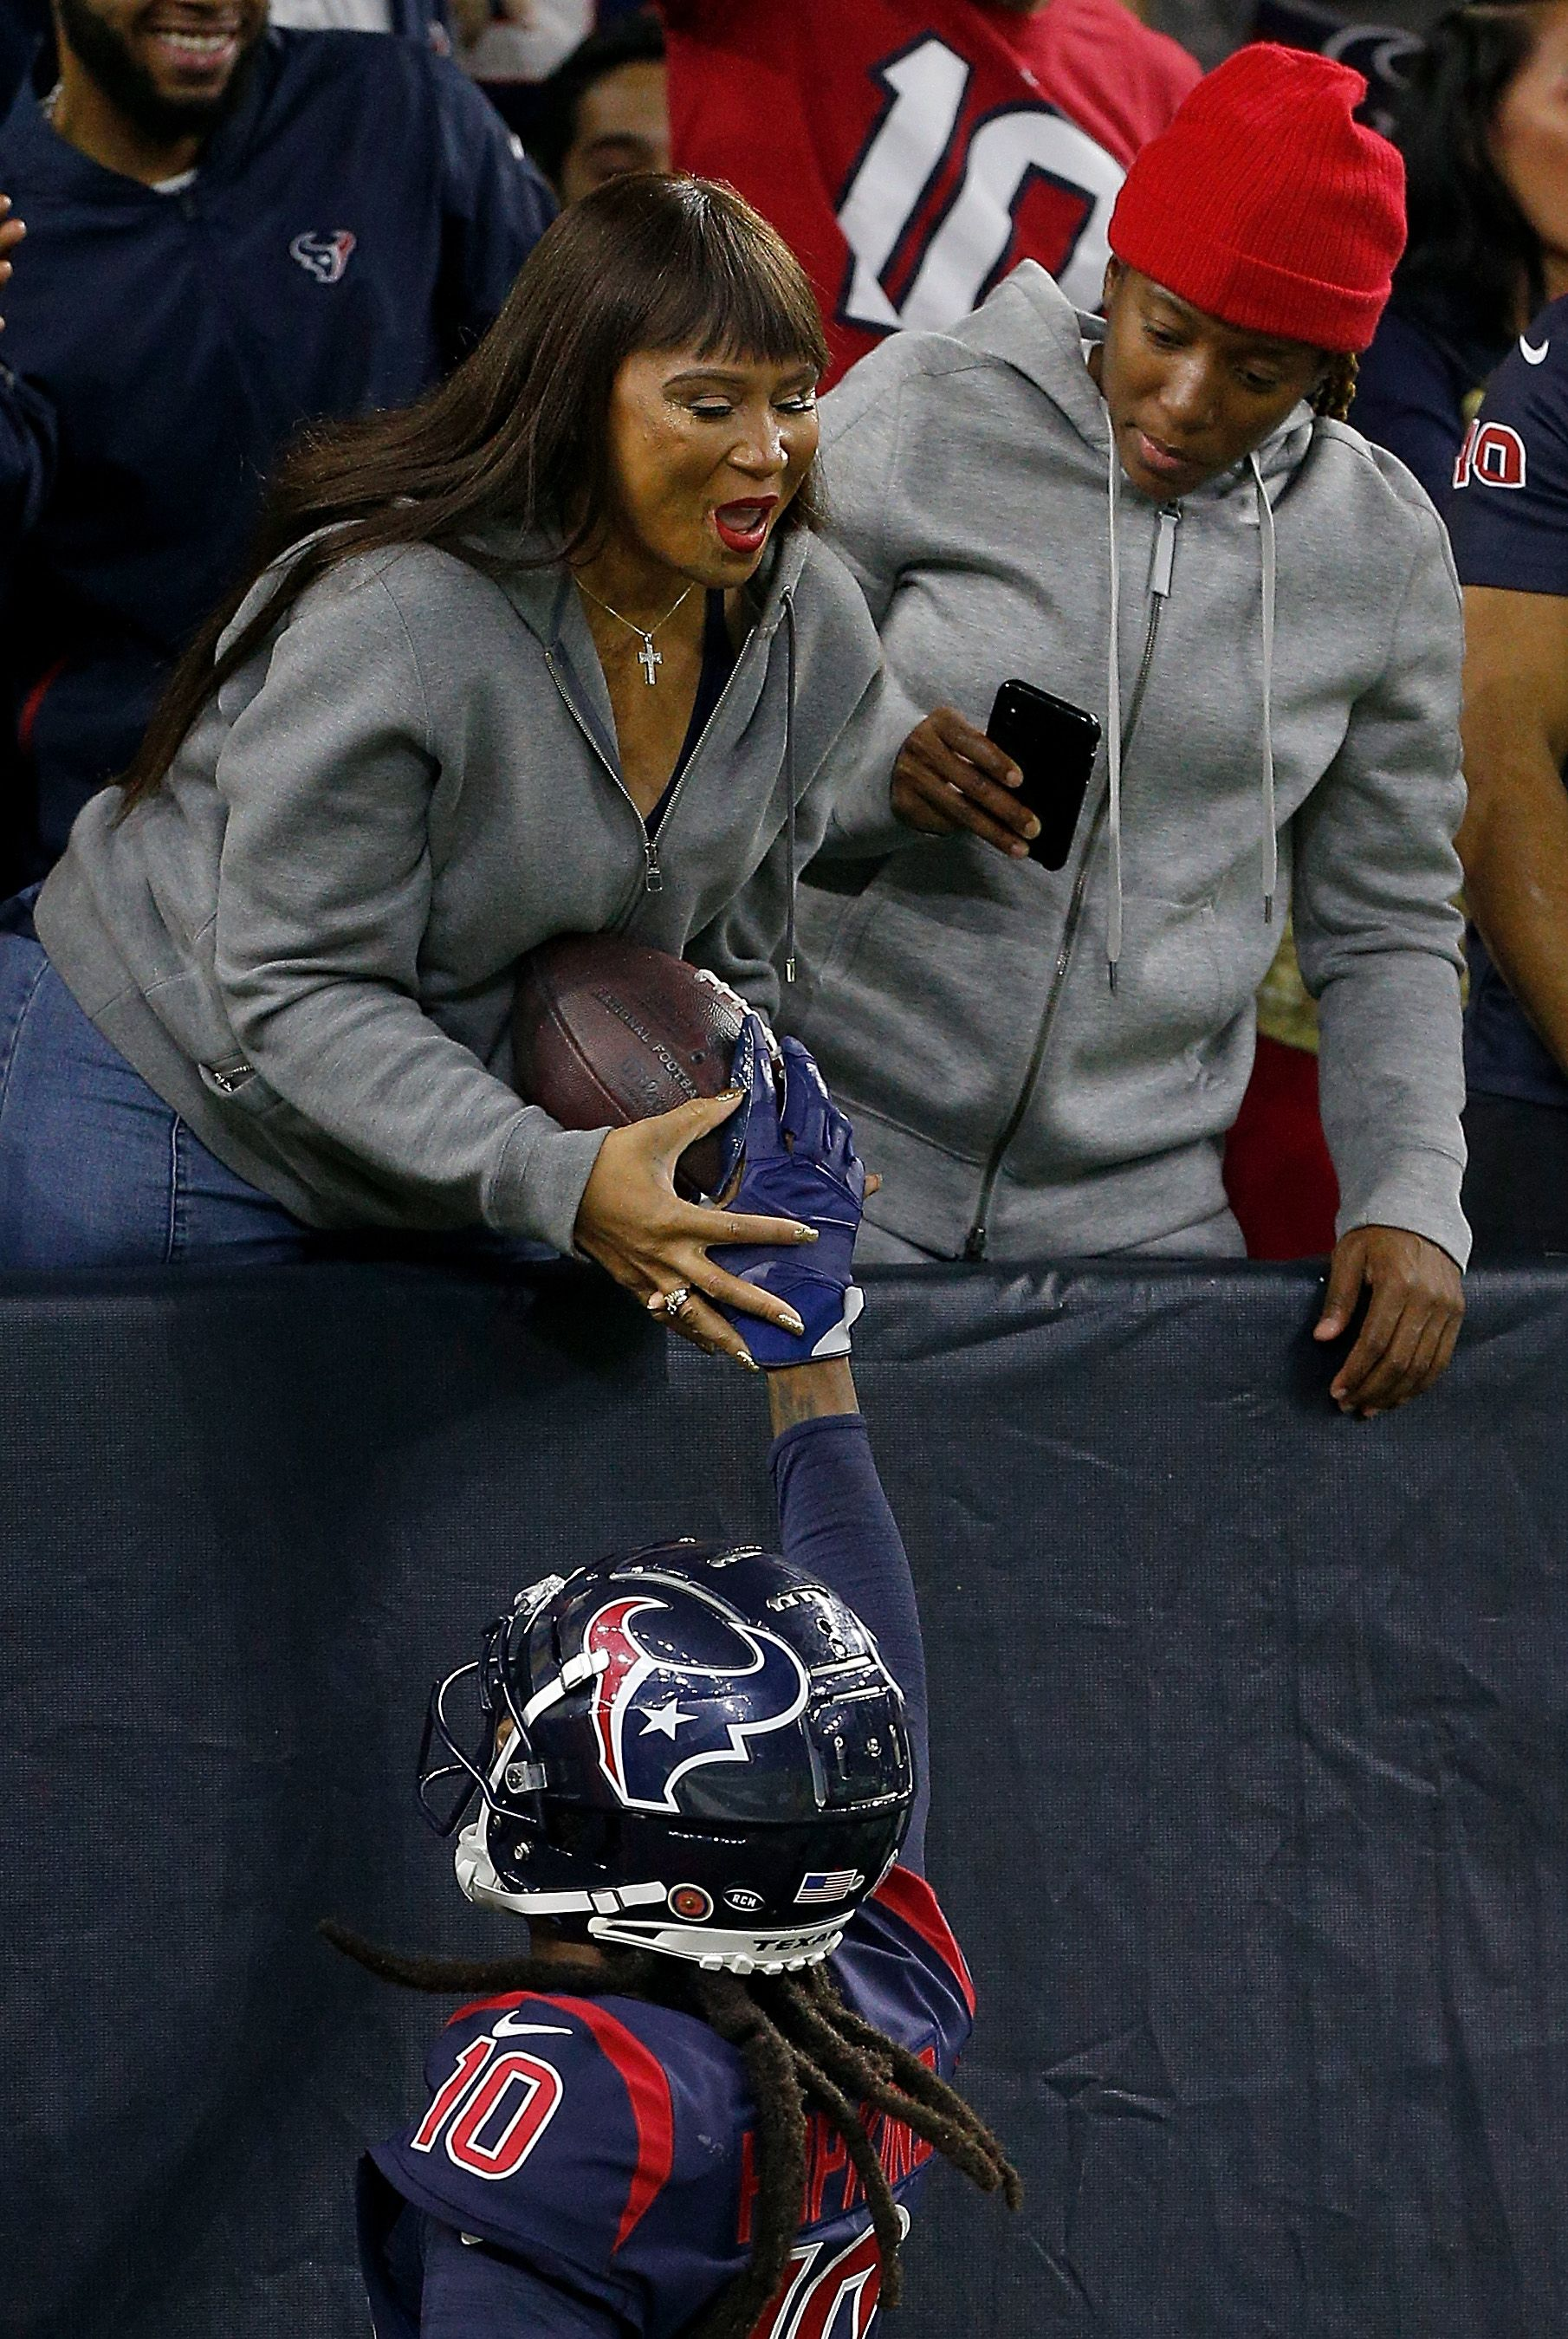 DeAndre Hopkins handing the ball to his mother, Sabrina Greenlee after a touchdown in November 21, 2019 in Houston, Texas | Source: Getty Images